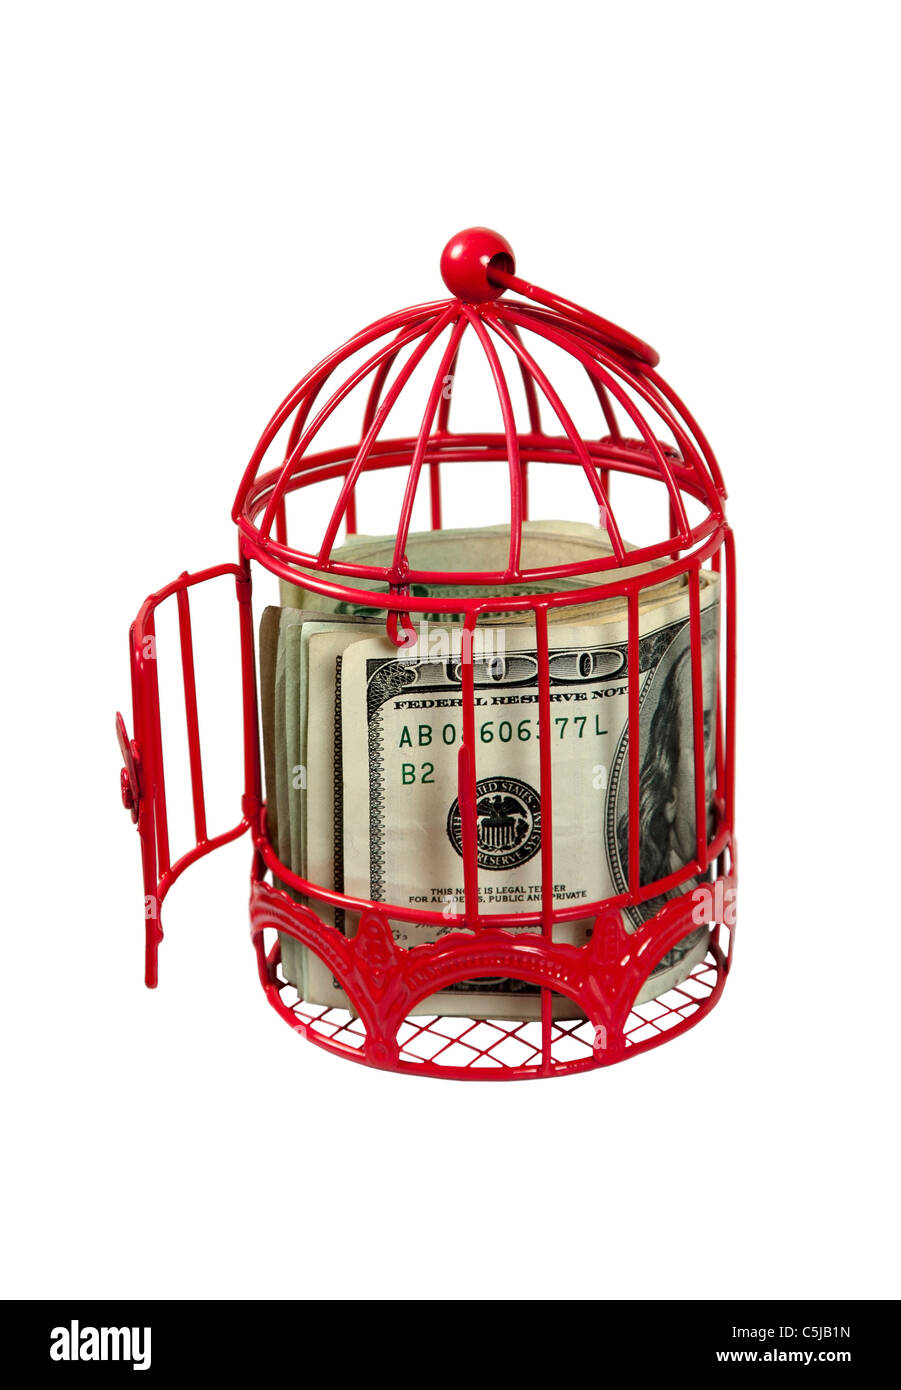 Funds to take flight shown by a birdcage with an open door - path included - Stock Image